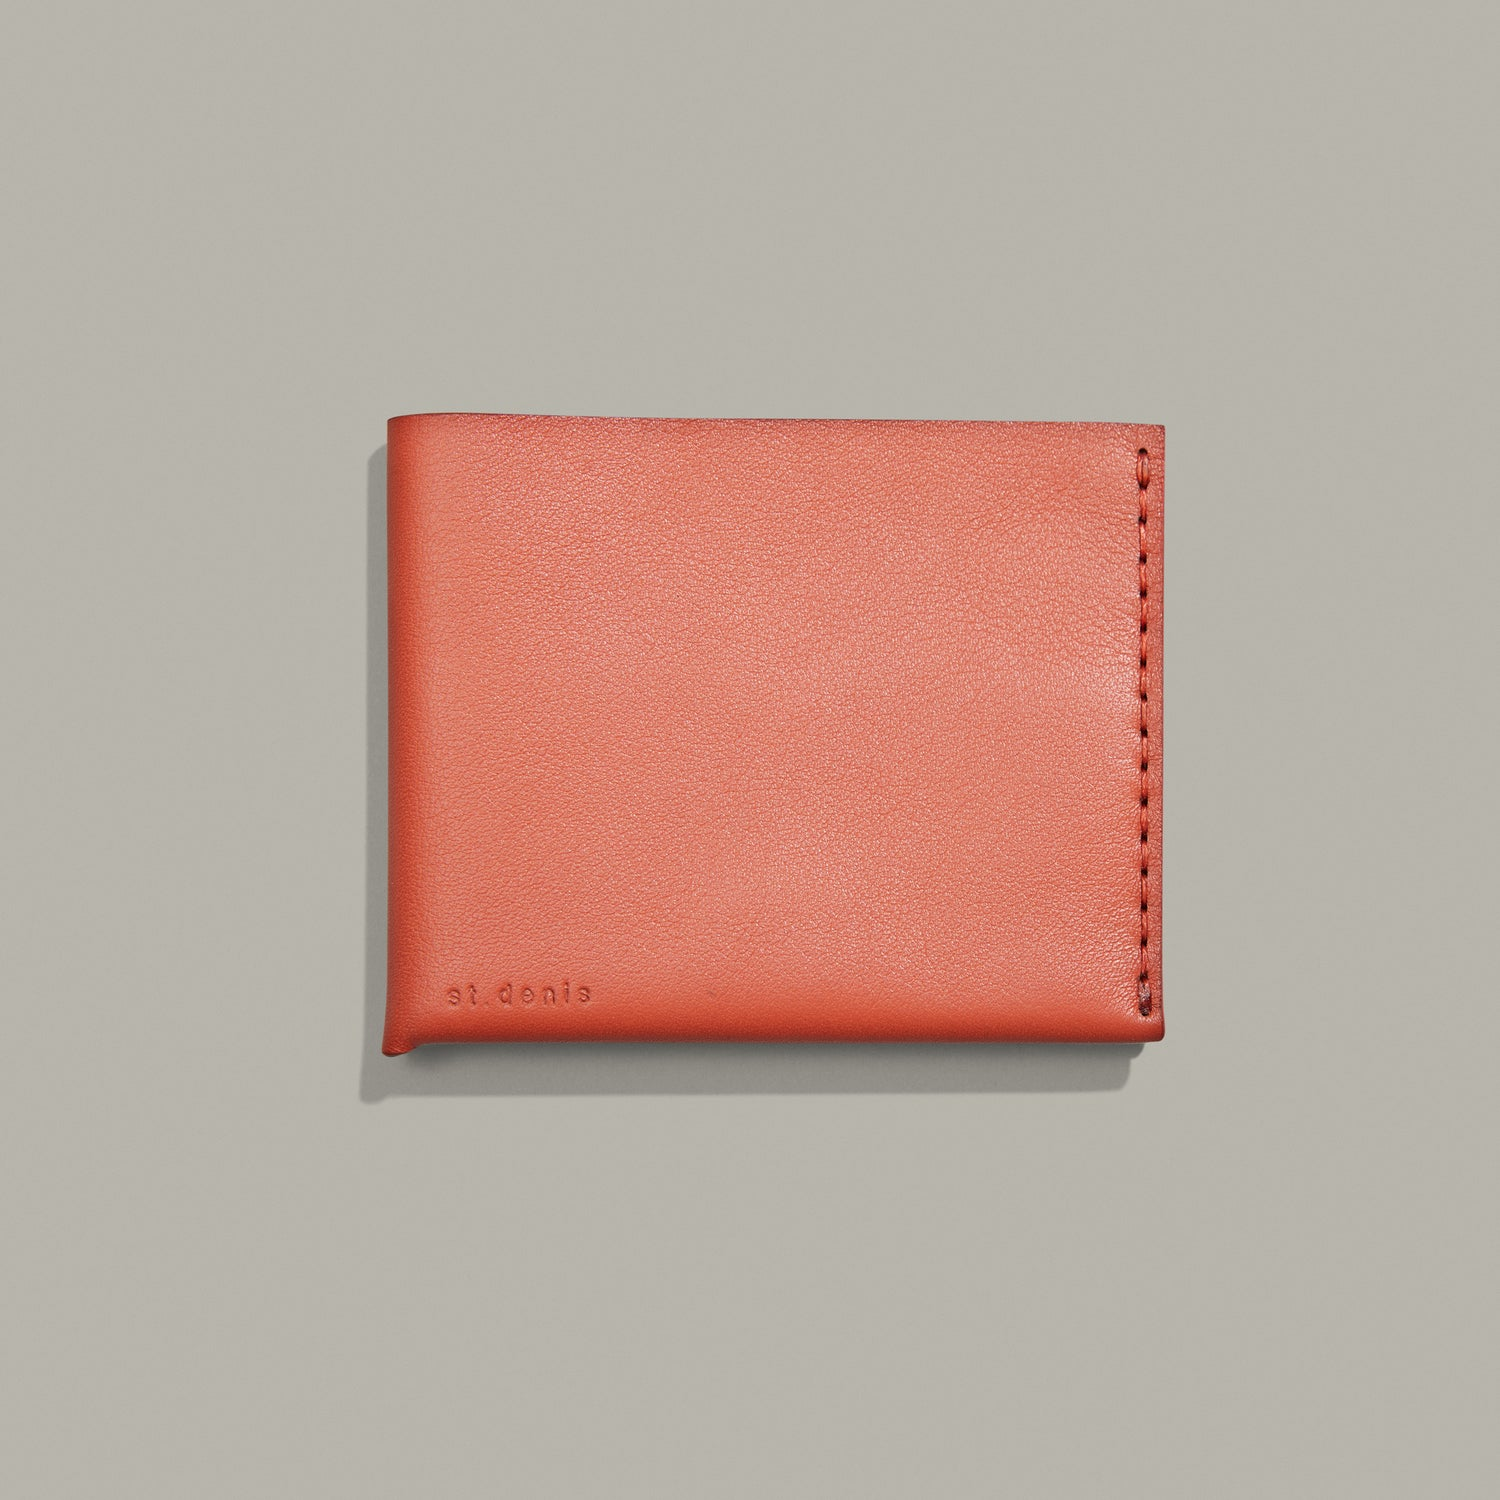 Sold out<br>Portefeuille bifold Couleur terracotta